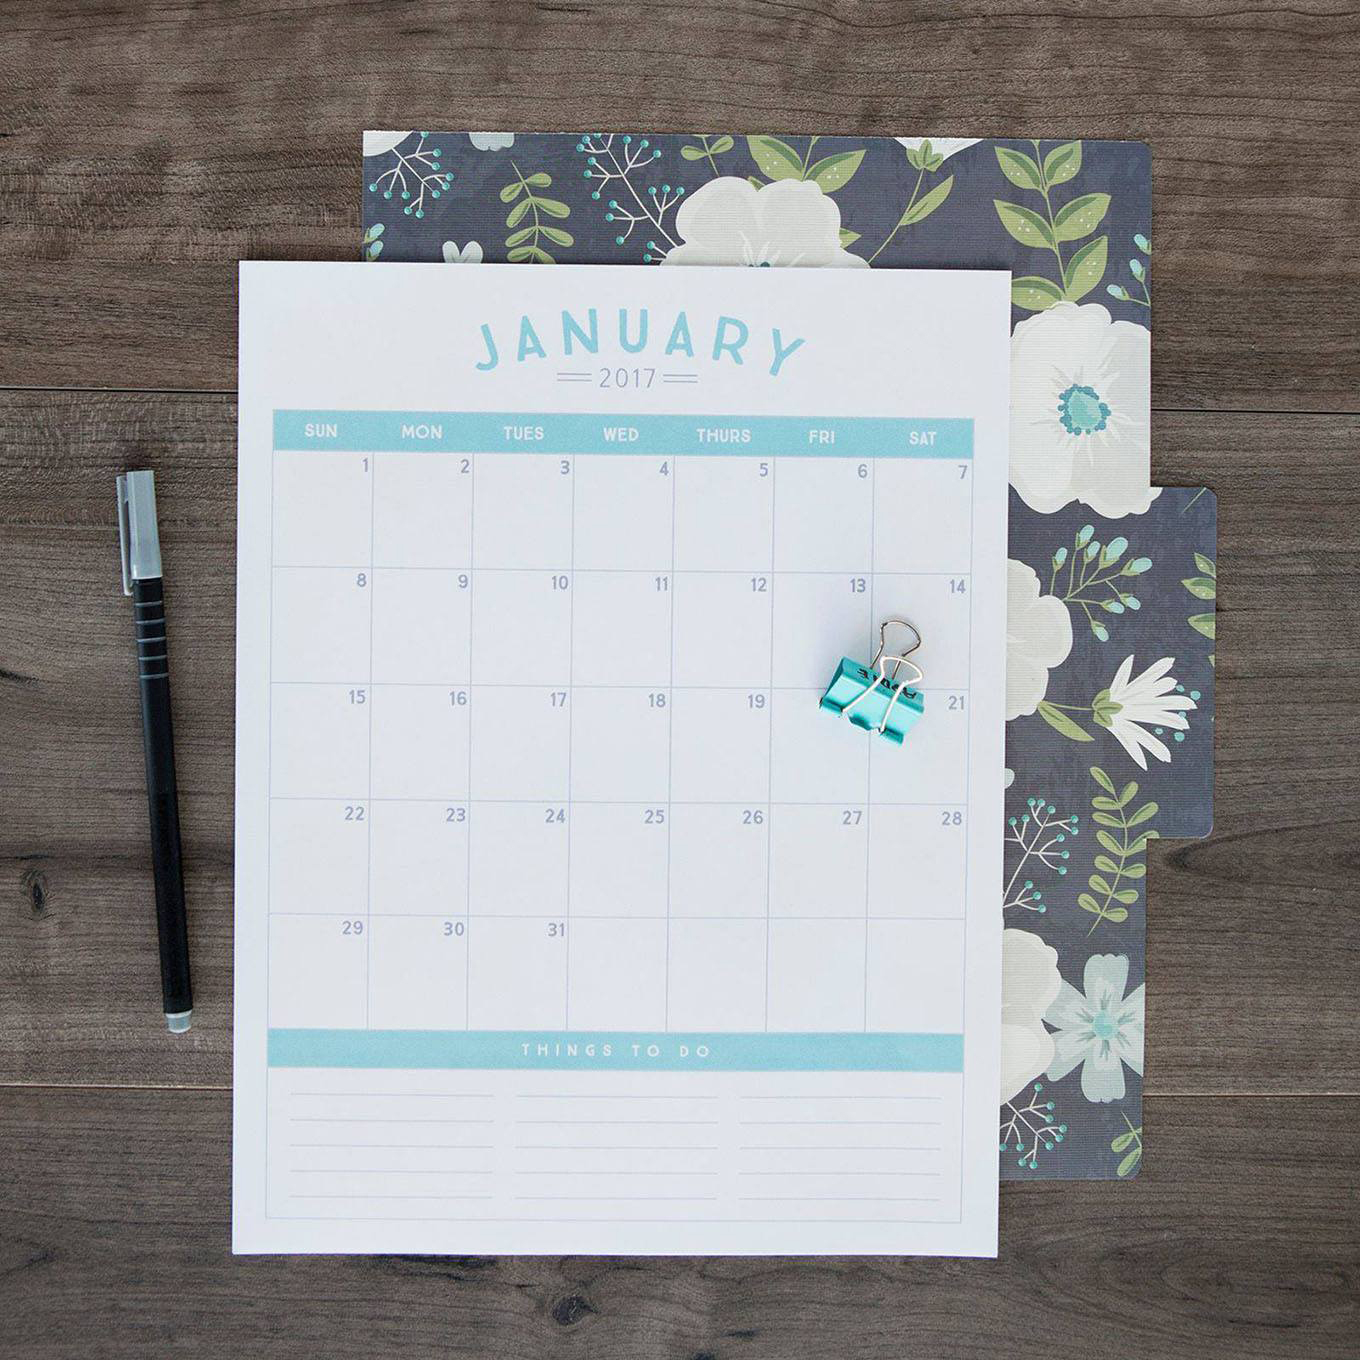 Want to download our FREE 2017 Calendar Printable? Become an exclusive Simple as That member and get instant access!